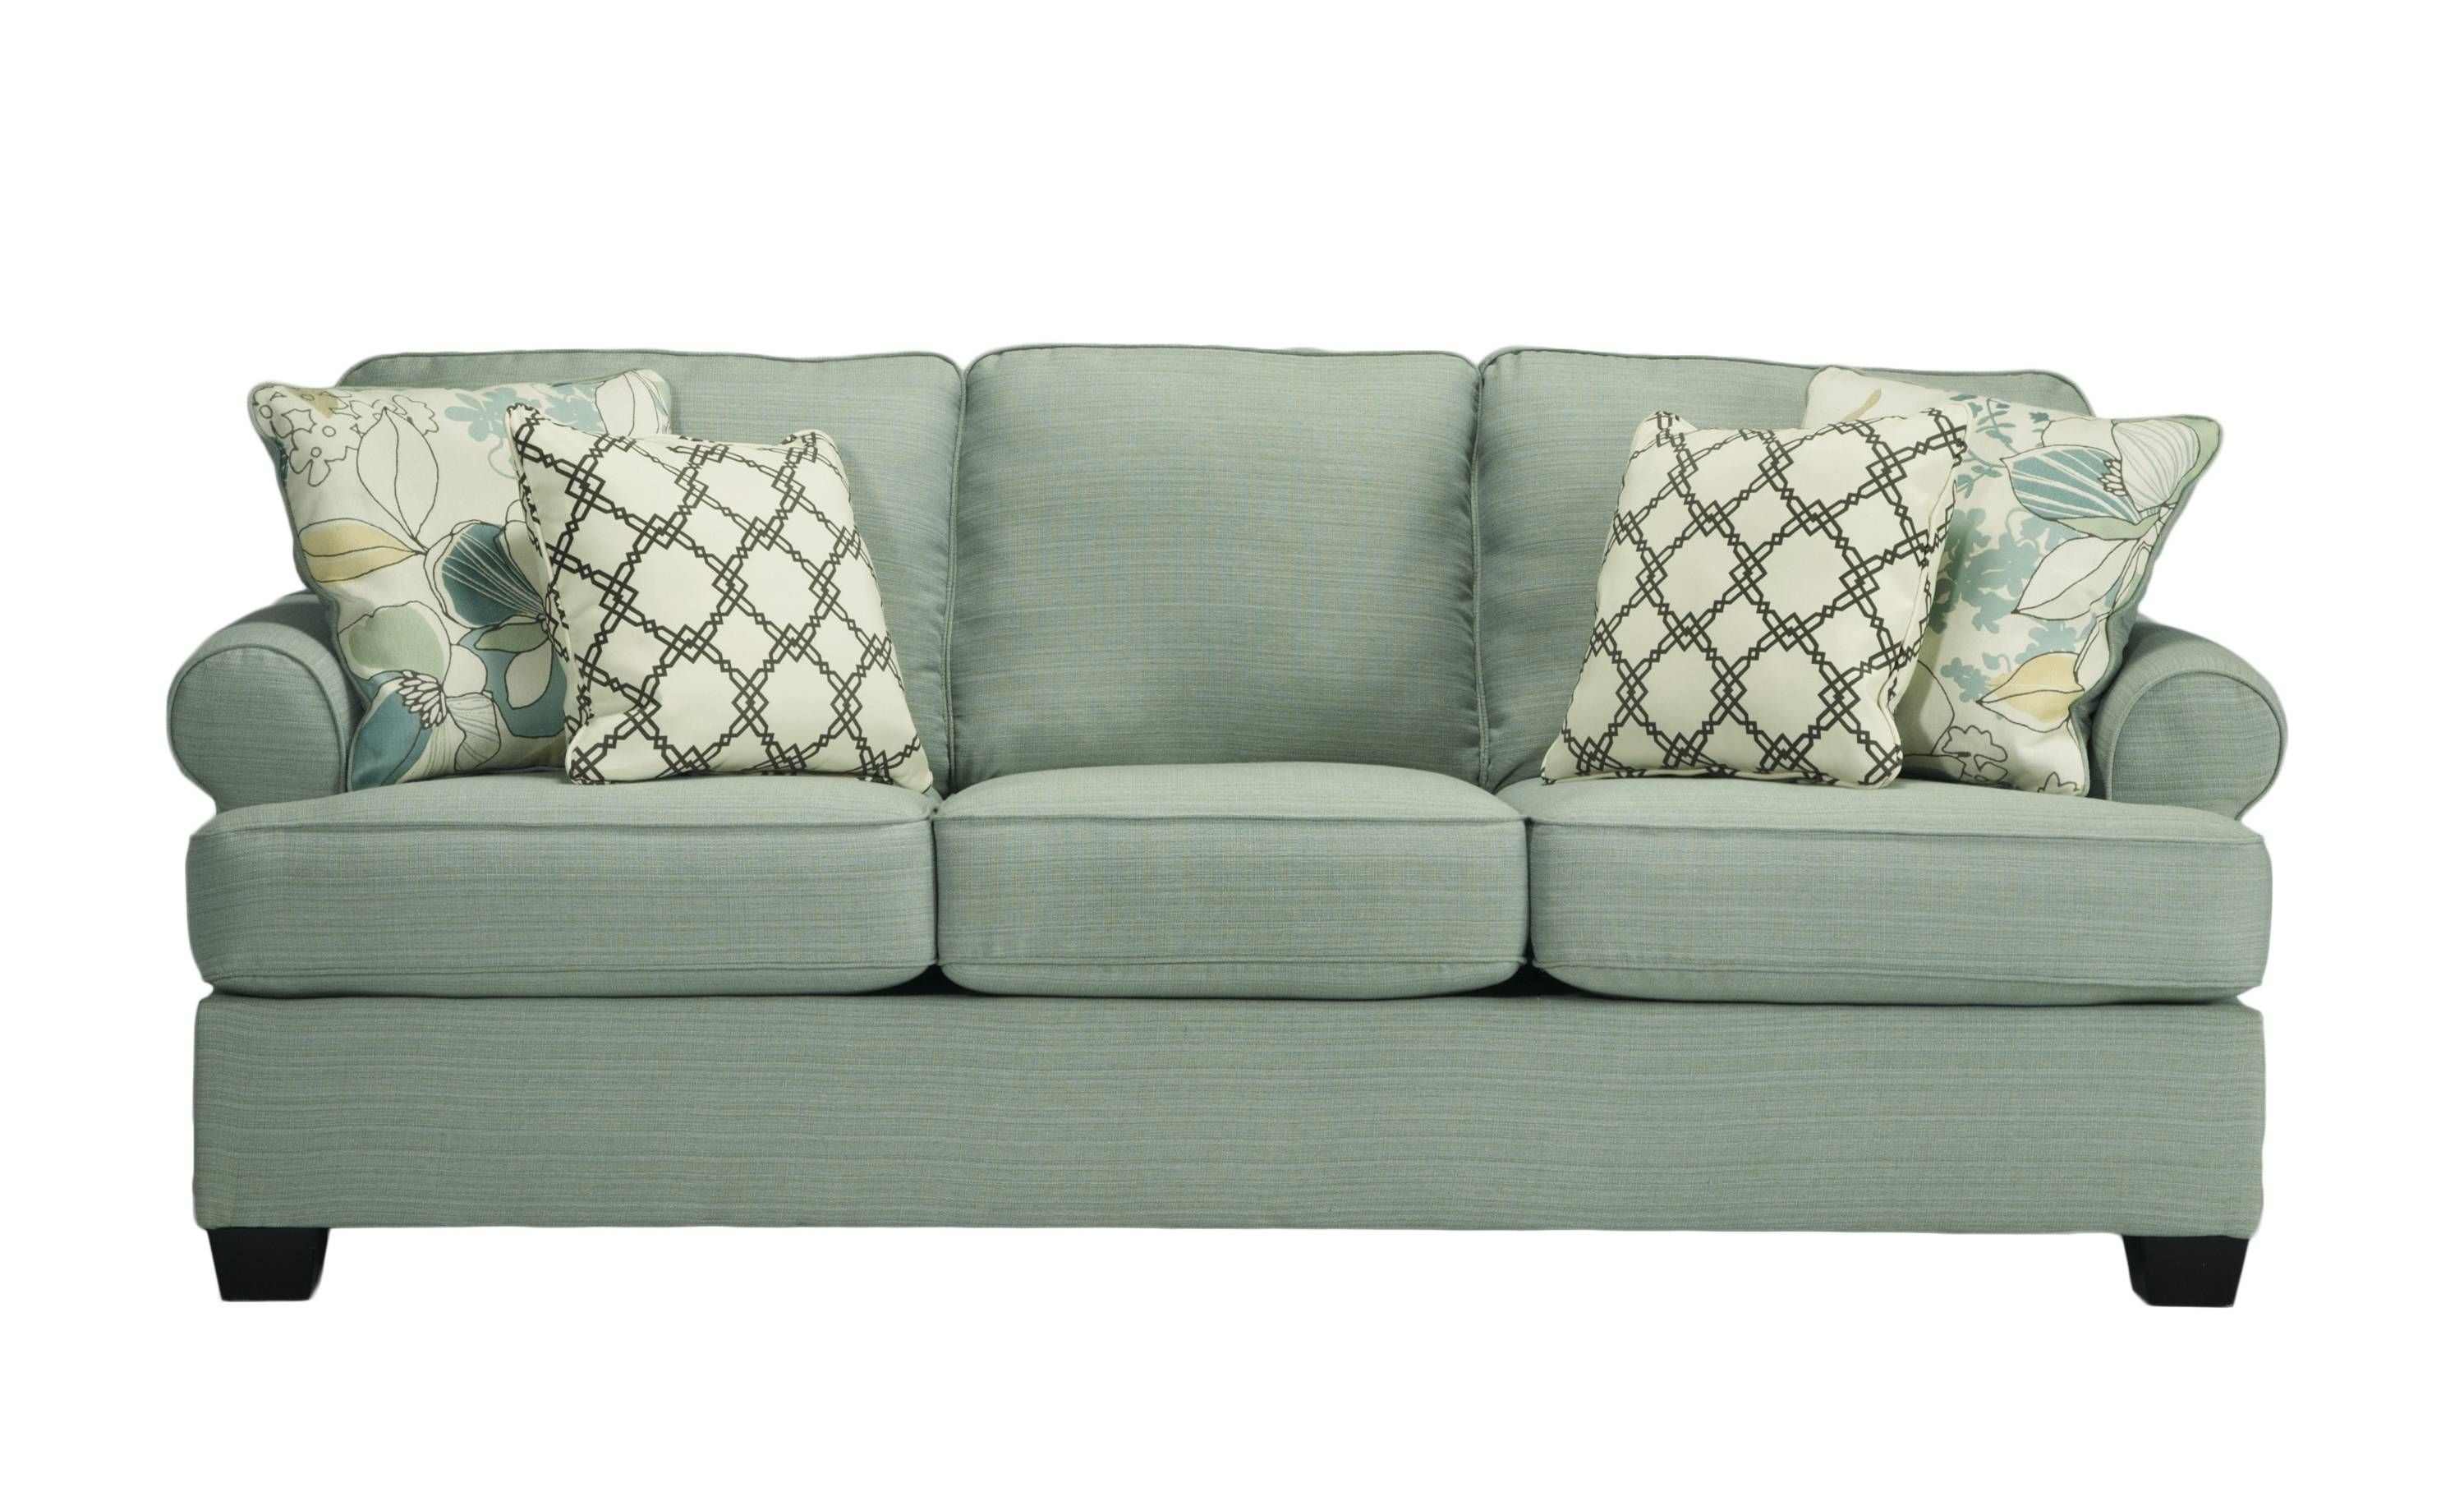 Daystar Contemporary Seafoam Fabric Sofa | Living Rooms | The pertaining to Seafoam Green Sofas (Image 7 of 15)